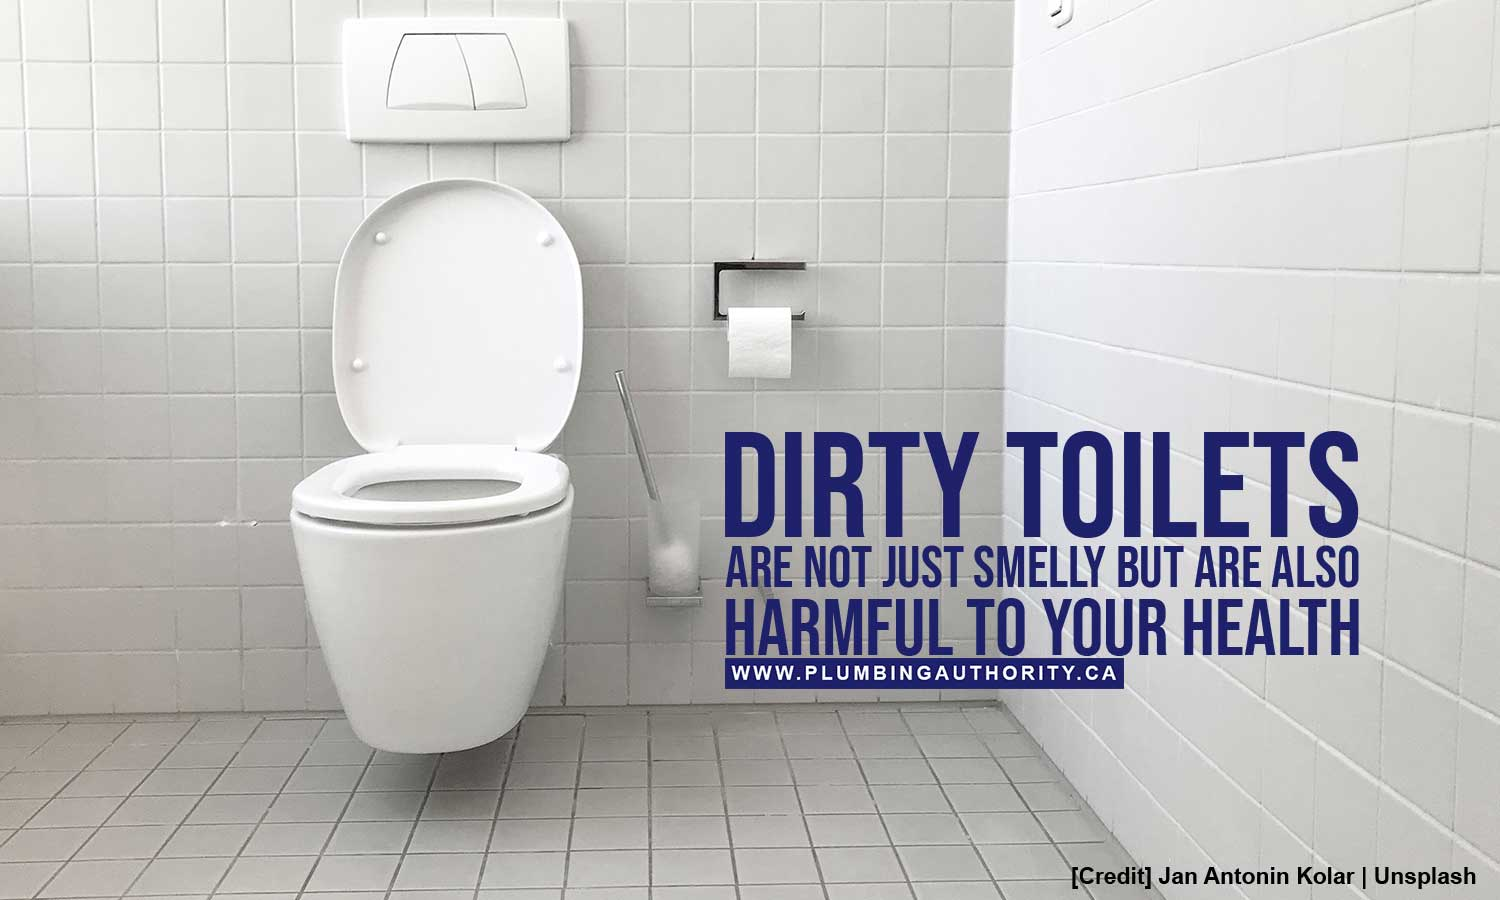 Dirty toilets are not just smelly